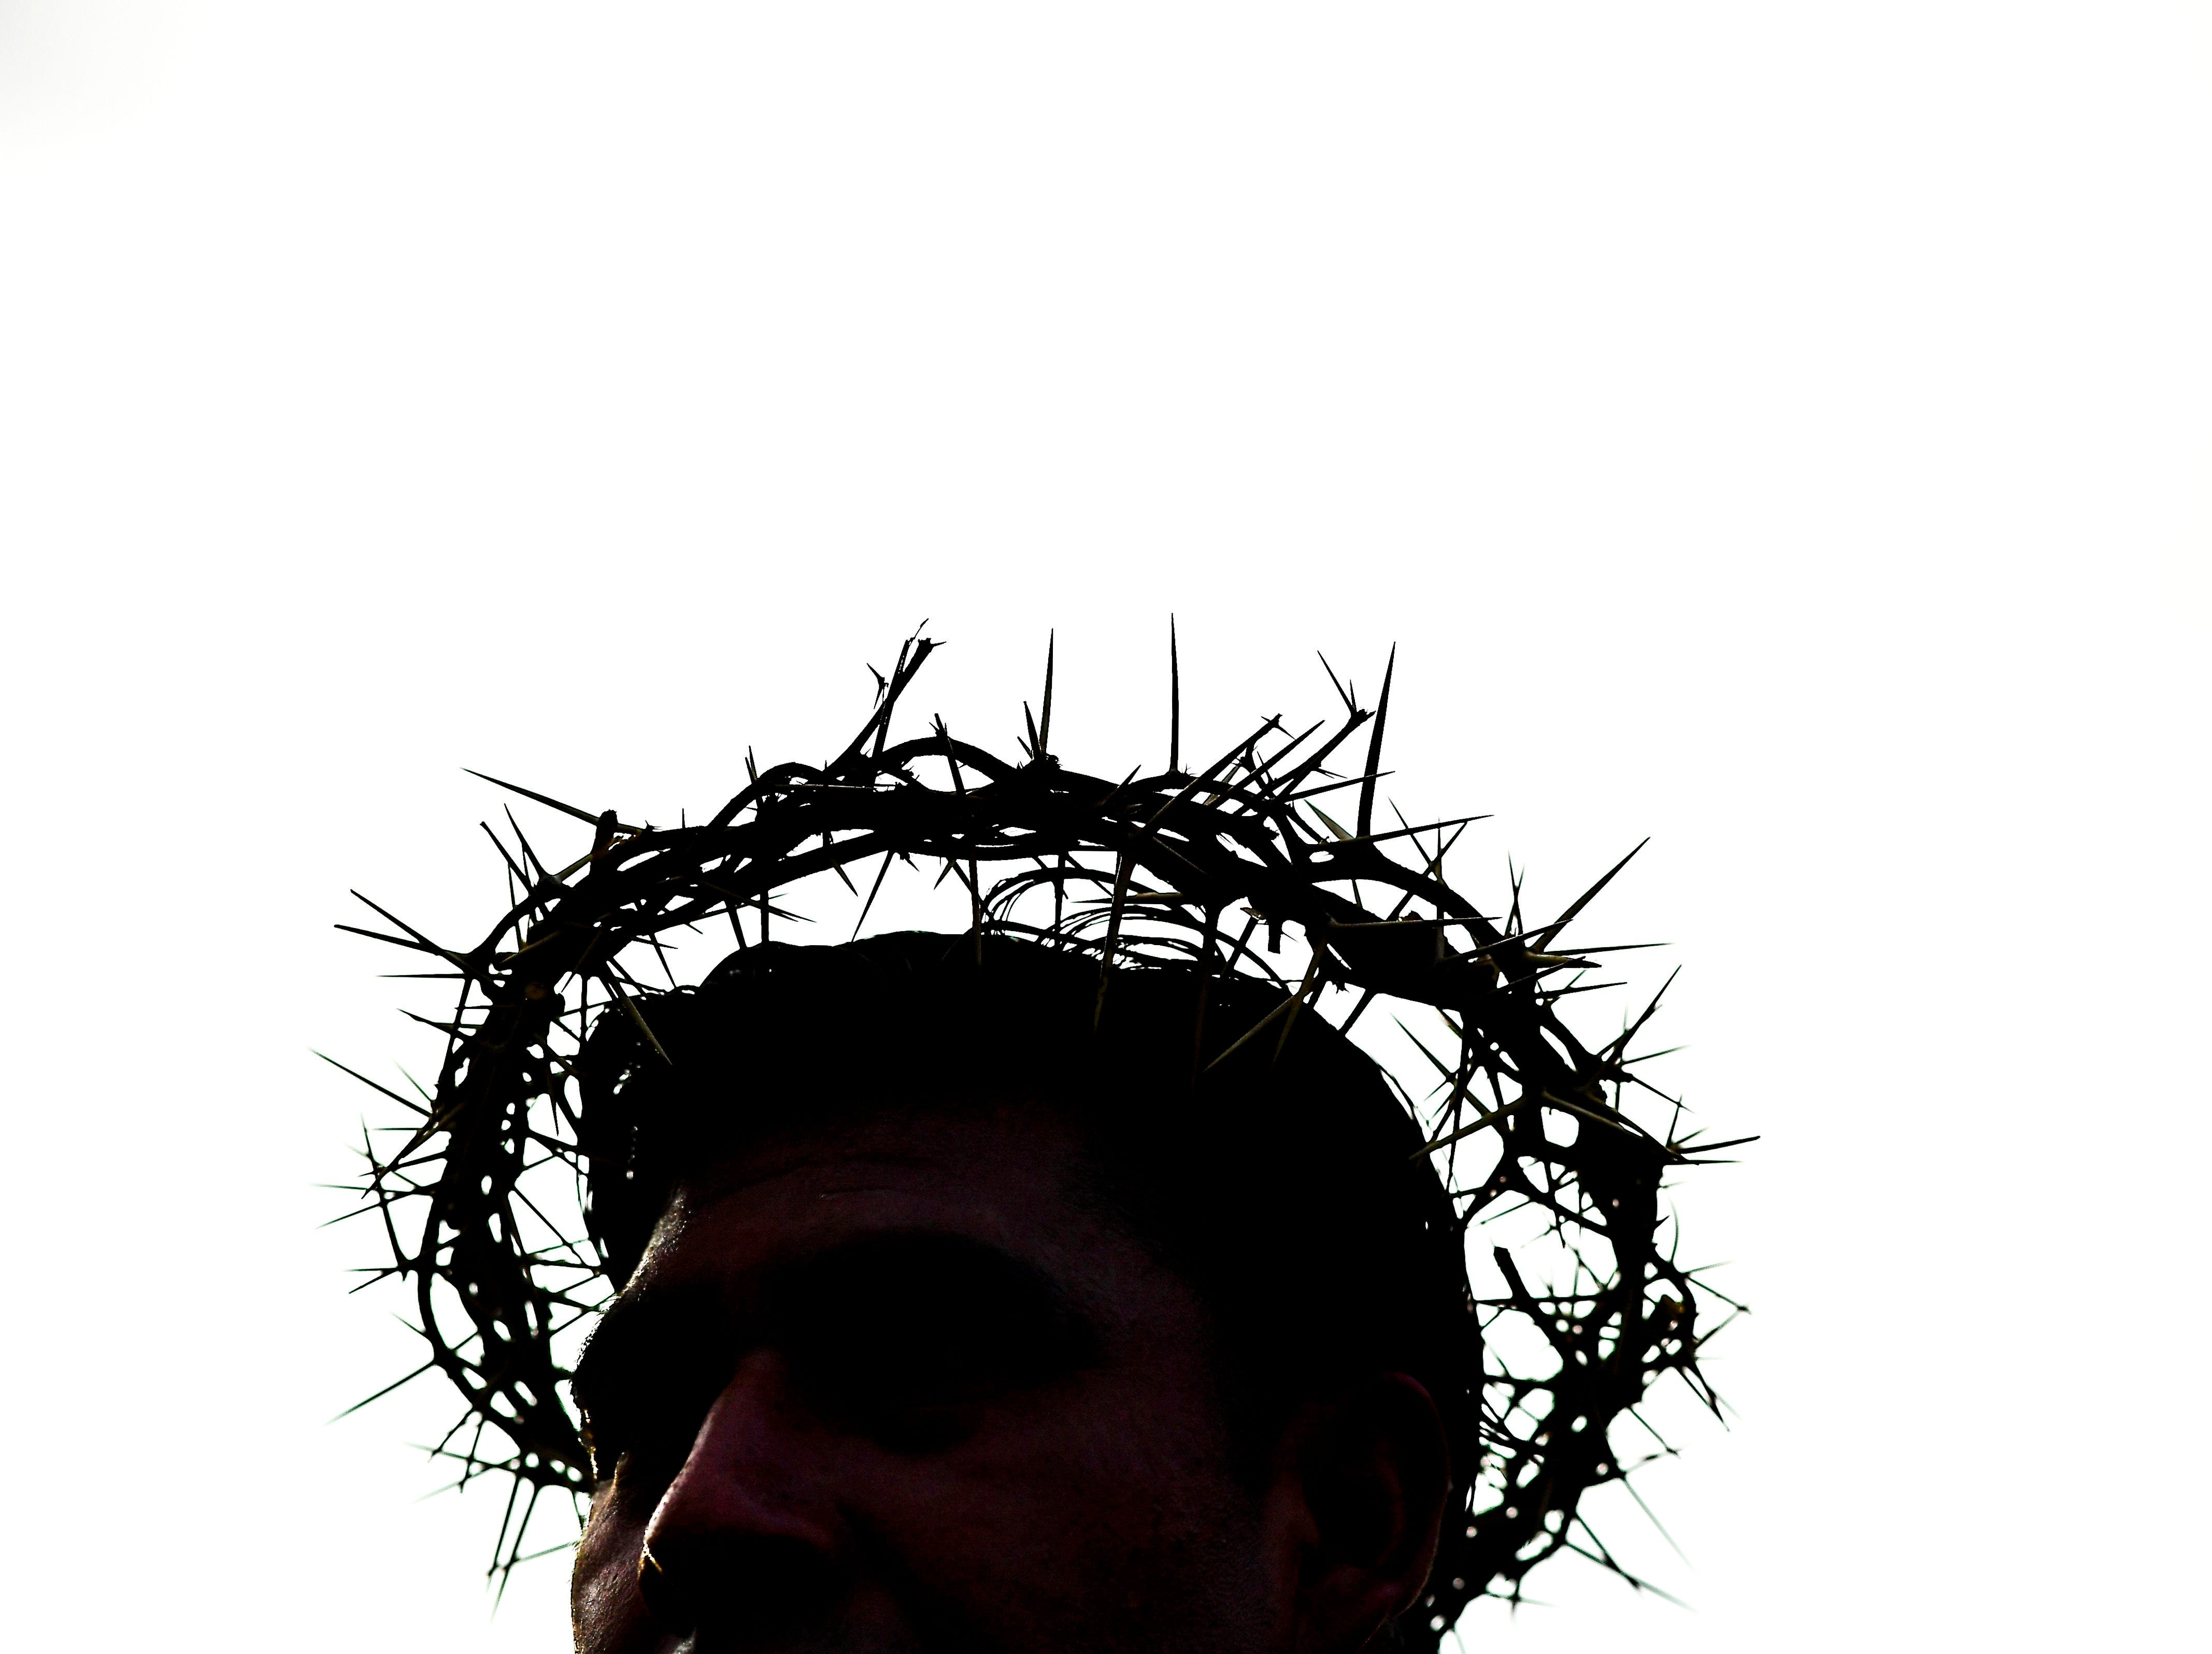 A 'penitent' takes part in the recreation of the Passion of Christ at the Iztapalapa neighborhood, eastern Mexico City, on April 19, 2019 during the Good Friday procession.  More than one billion Christian across the world mark the Holy Week of Easter in celebration of the crucifixion and resurrection of Jesus Christ.